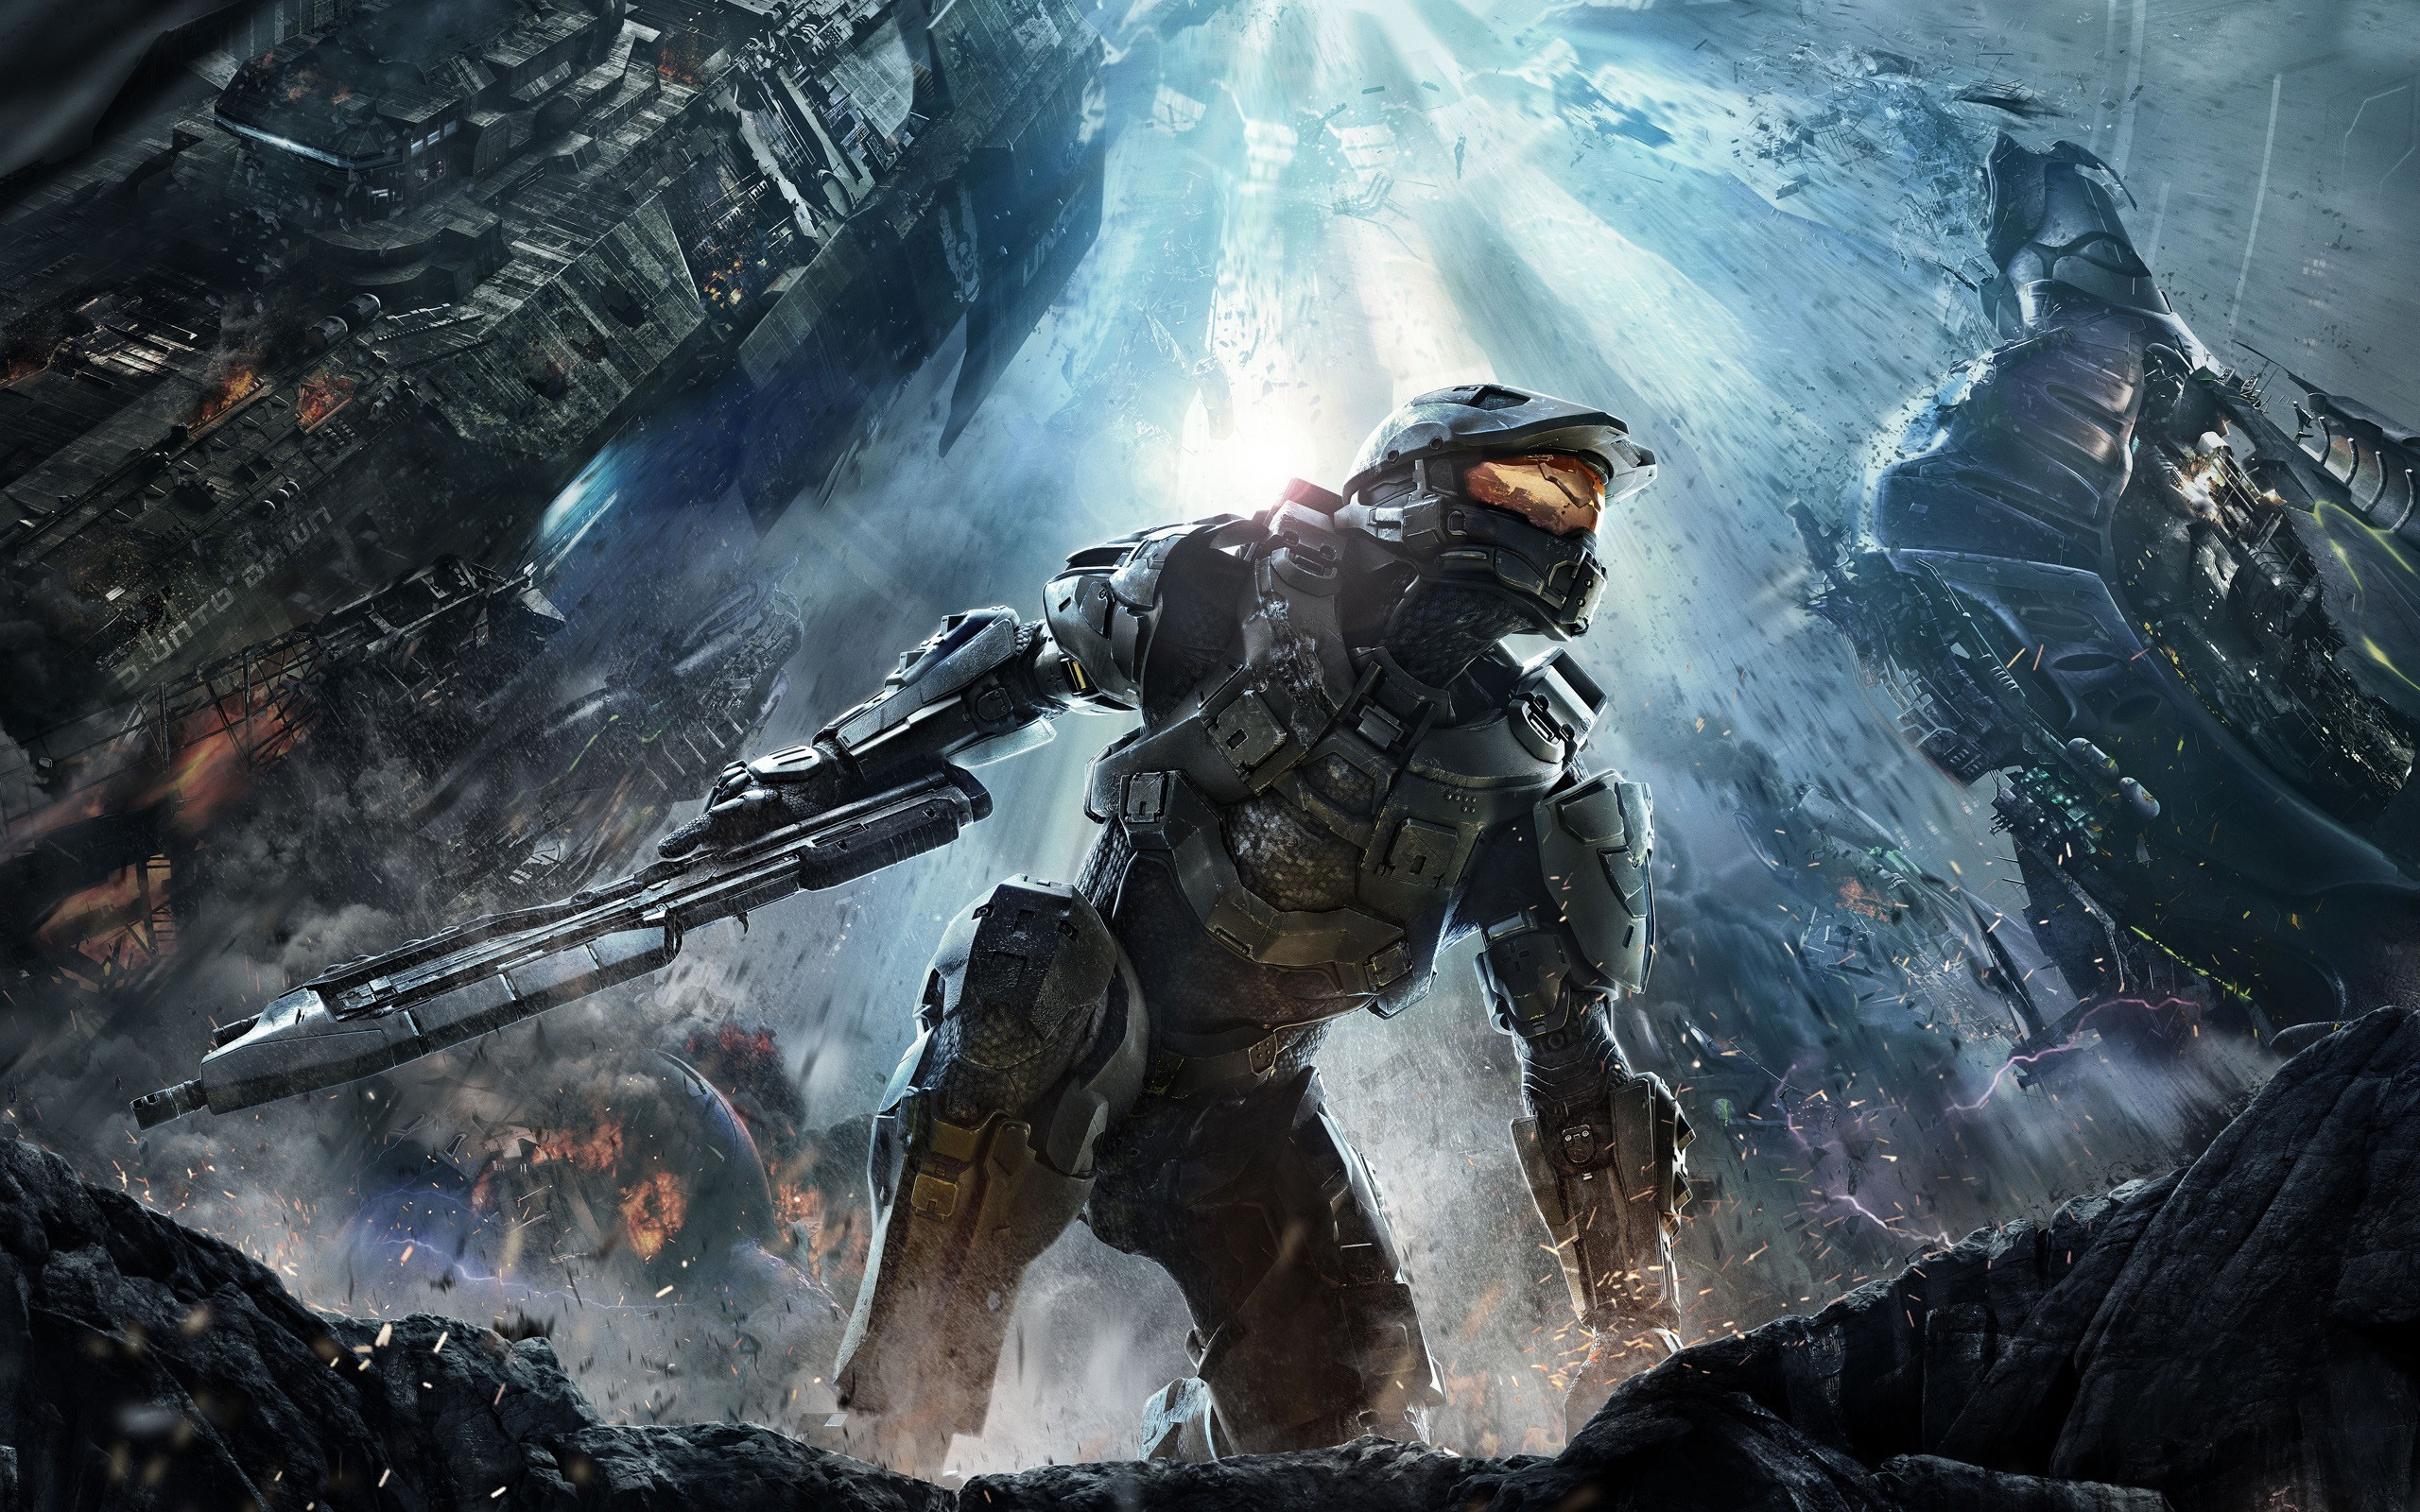 Halo-5-Master-Chief-Wide-Wallpapers.jpg (2560×1600)   Wallpaper Desktop    Pinterest   Wallpaper desktop and Wallpaper